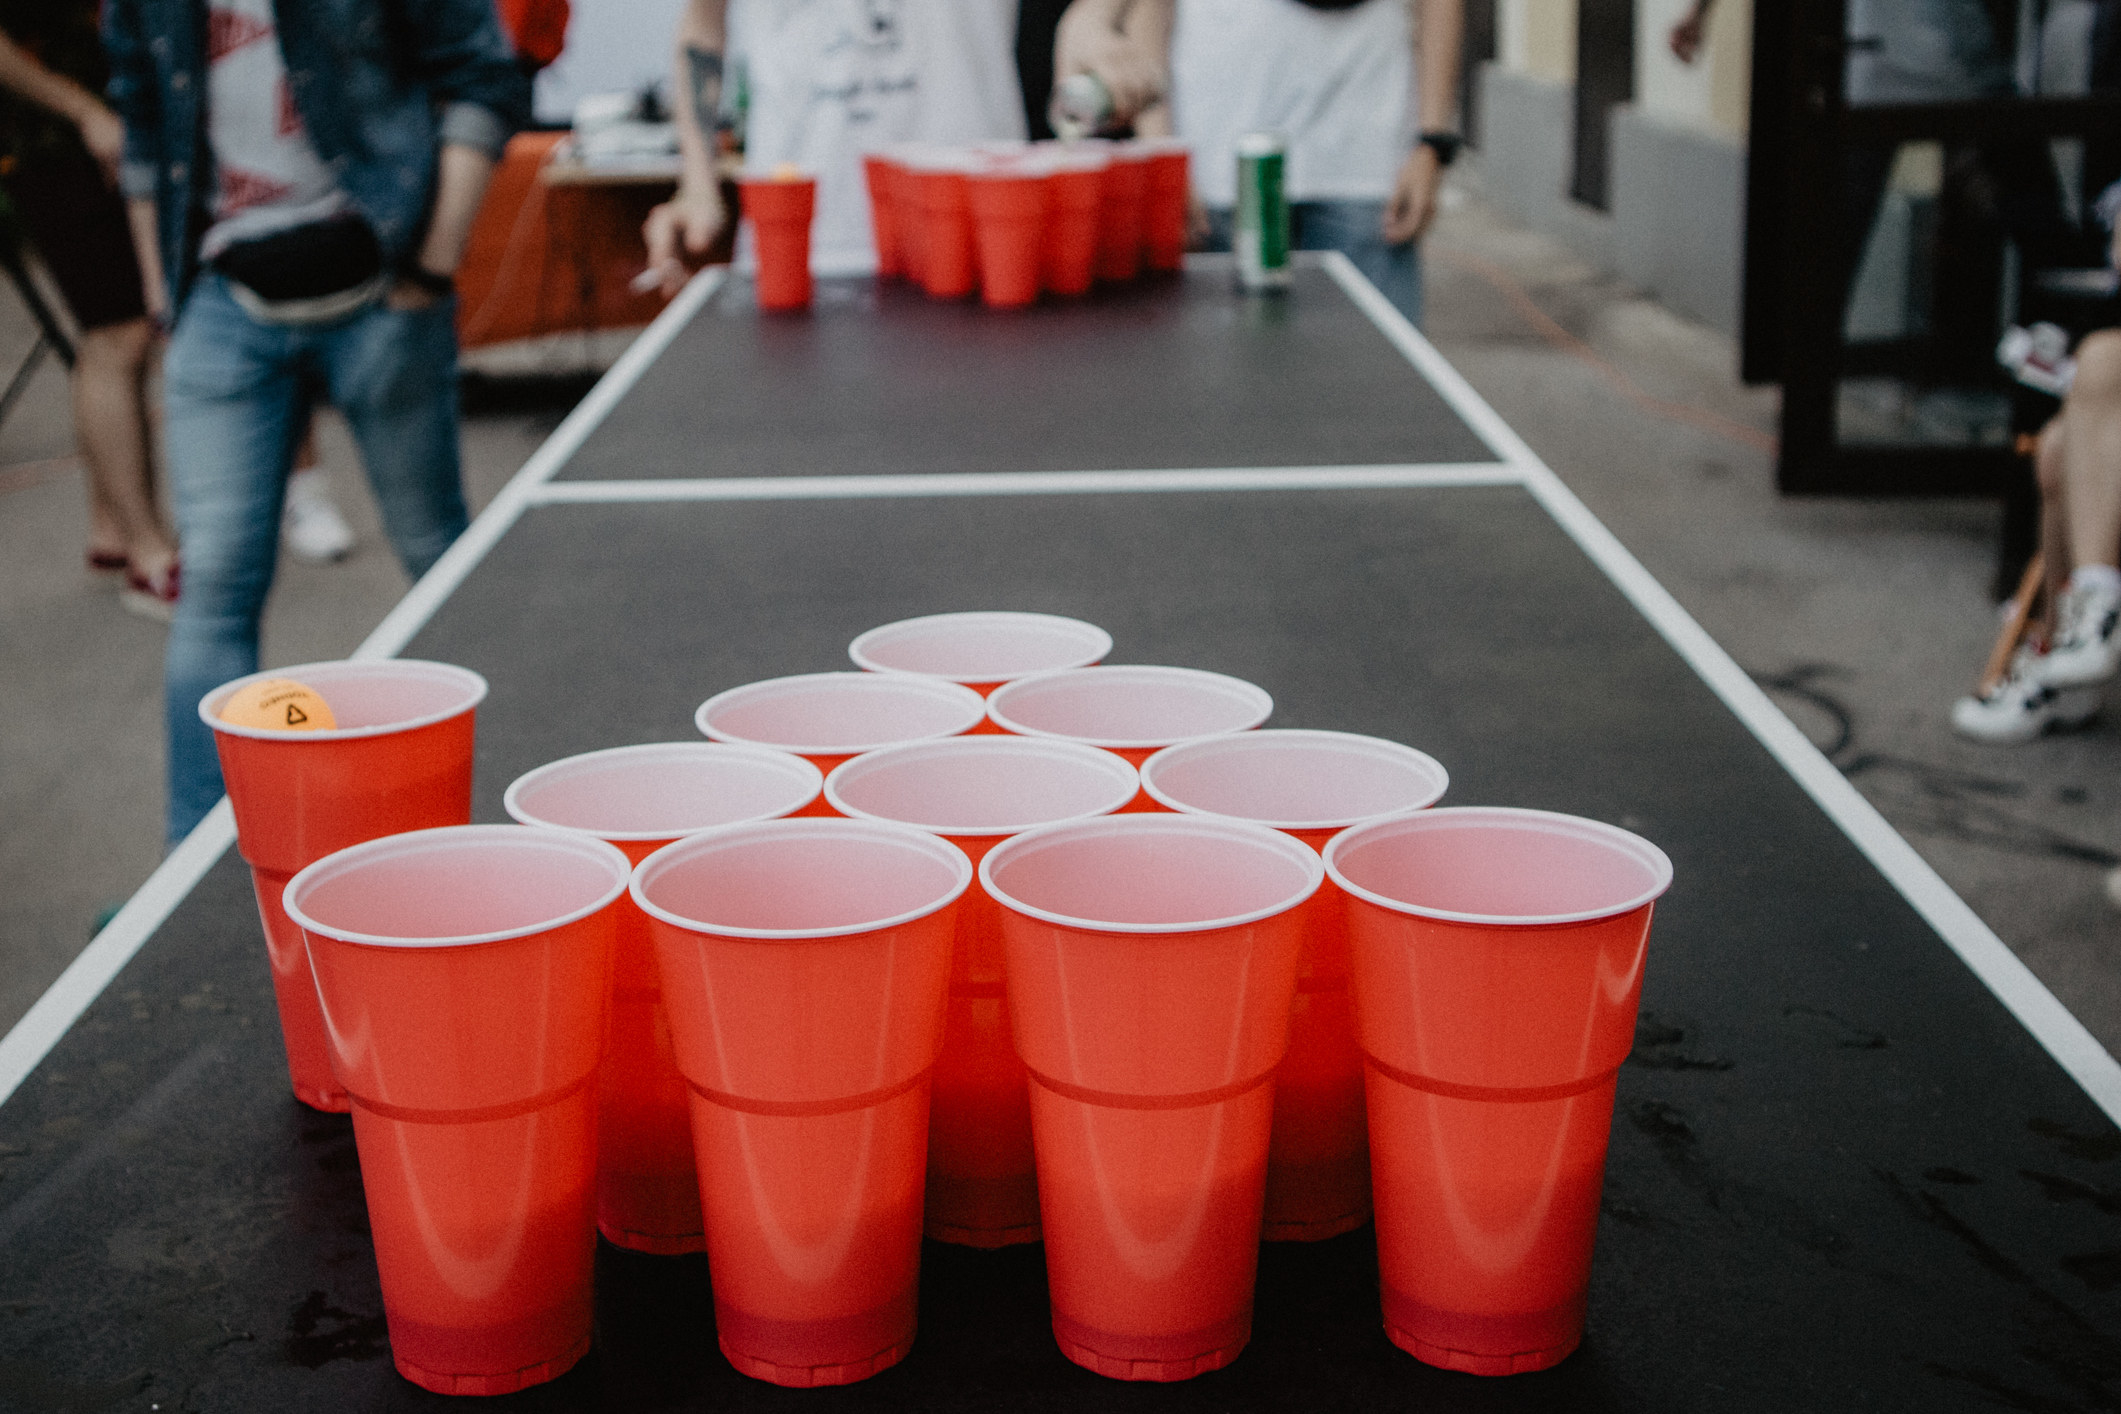 People playing a drinking game with red solo cups